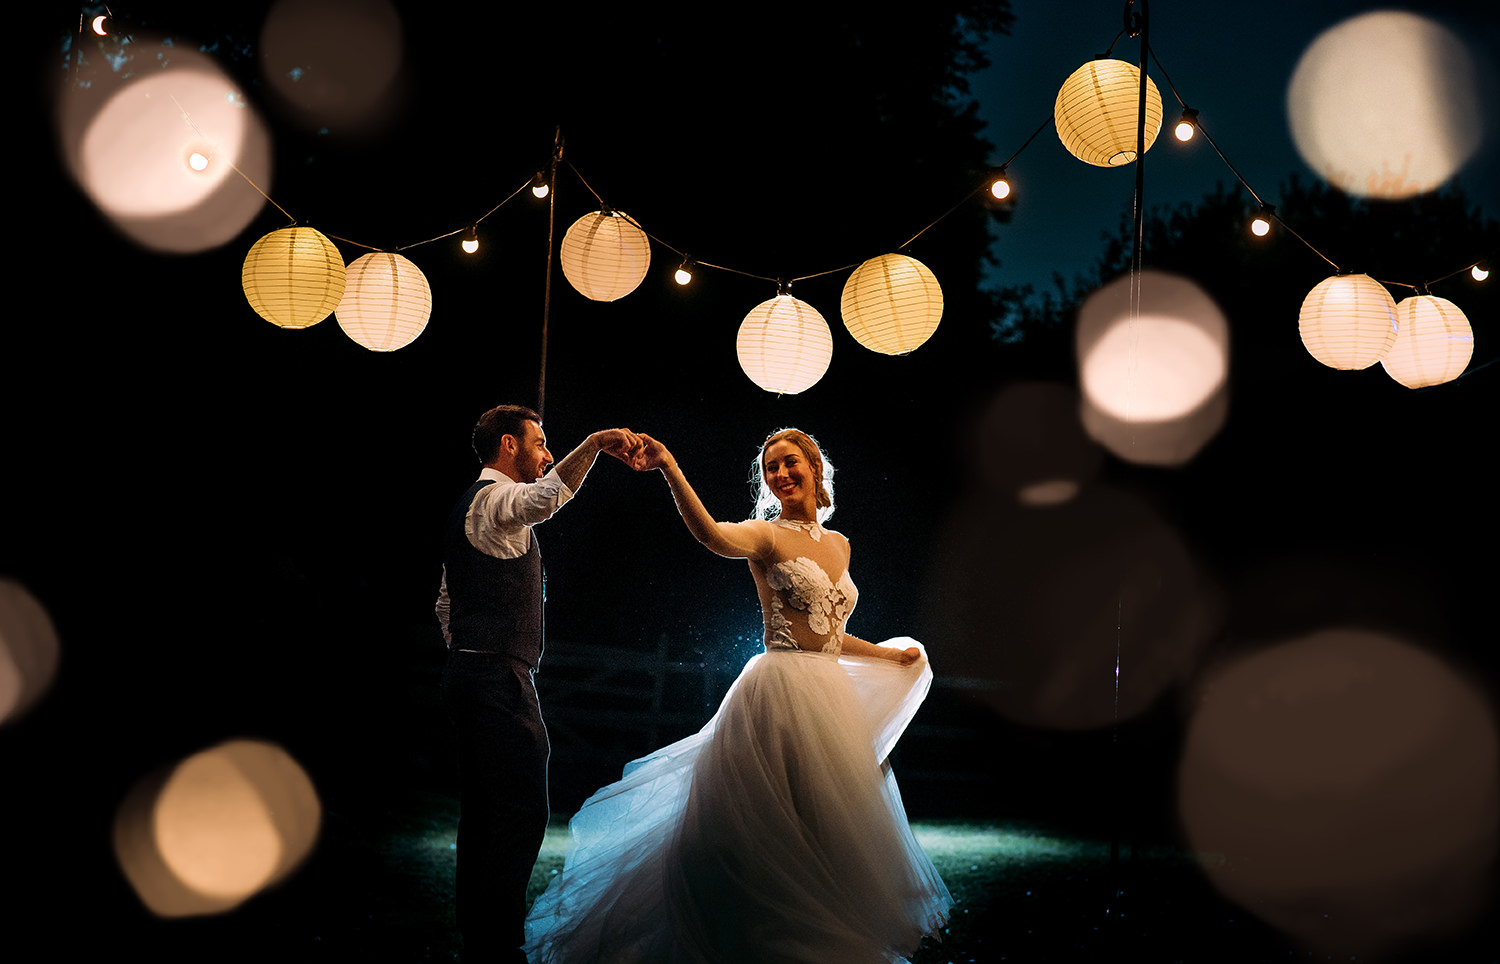 night time image of the bride and groom dancing under lanterns